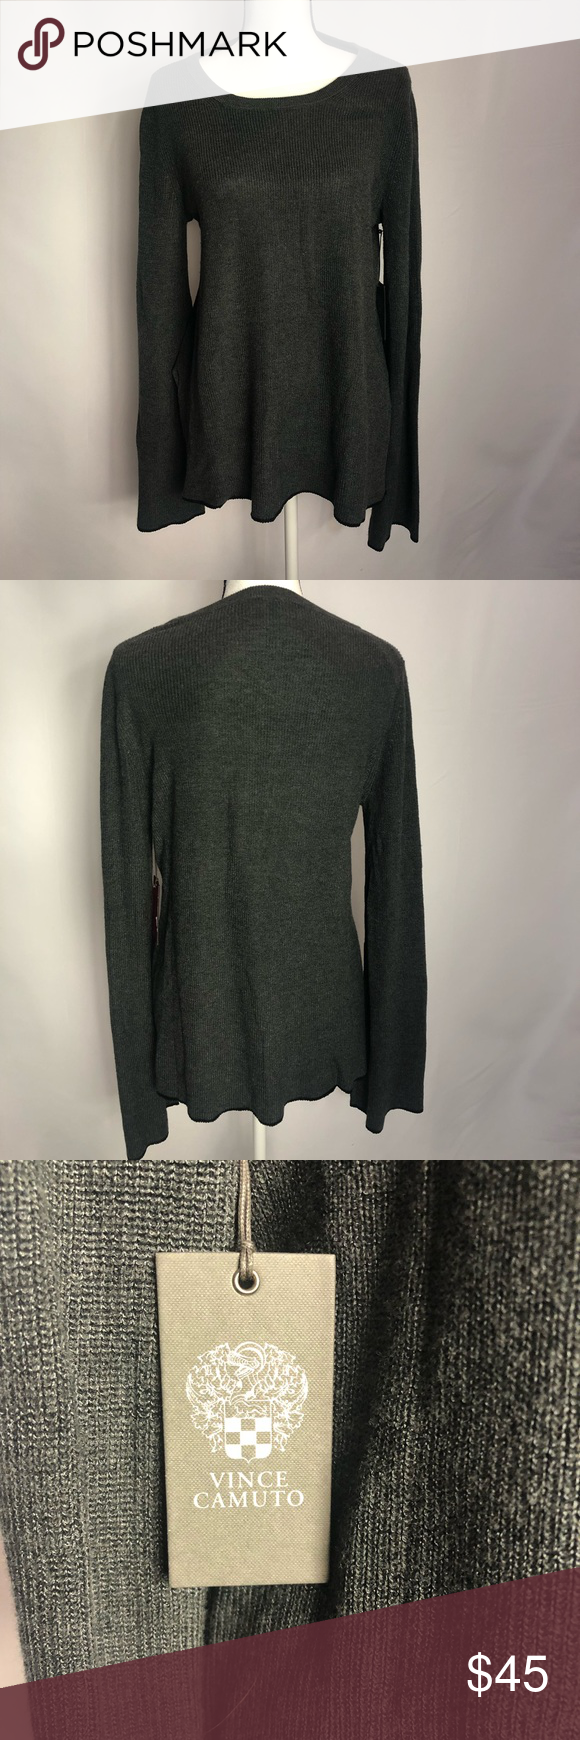 2d424ae4968 Tipped Bell Sleeve Sweater Vince Camuto SIZE INFO Runs large  order one size  down. Regular  XS 2-4